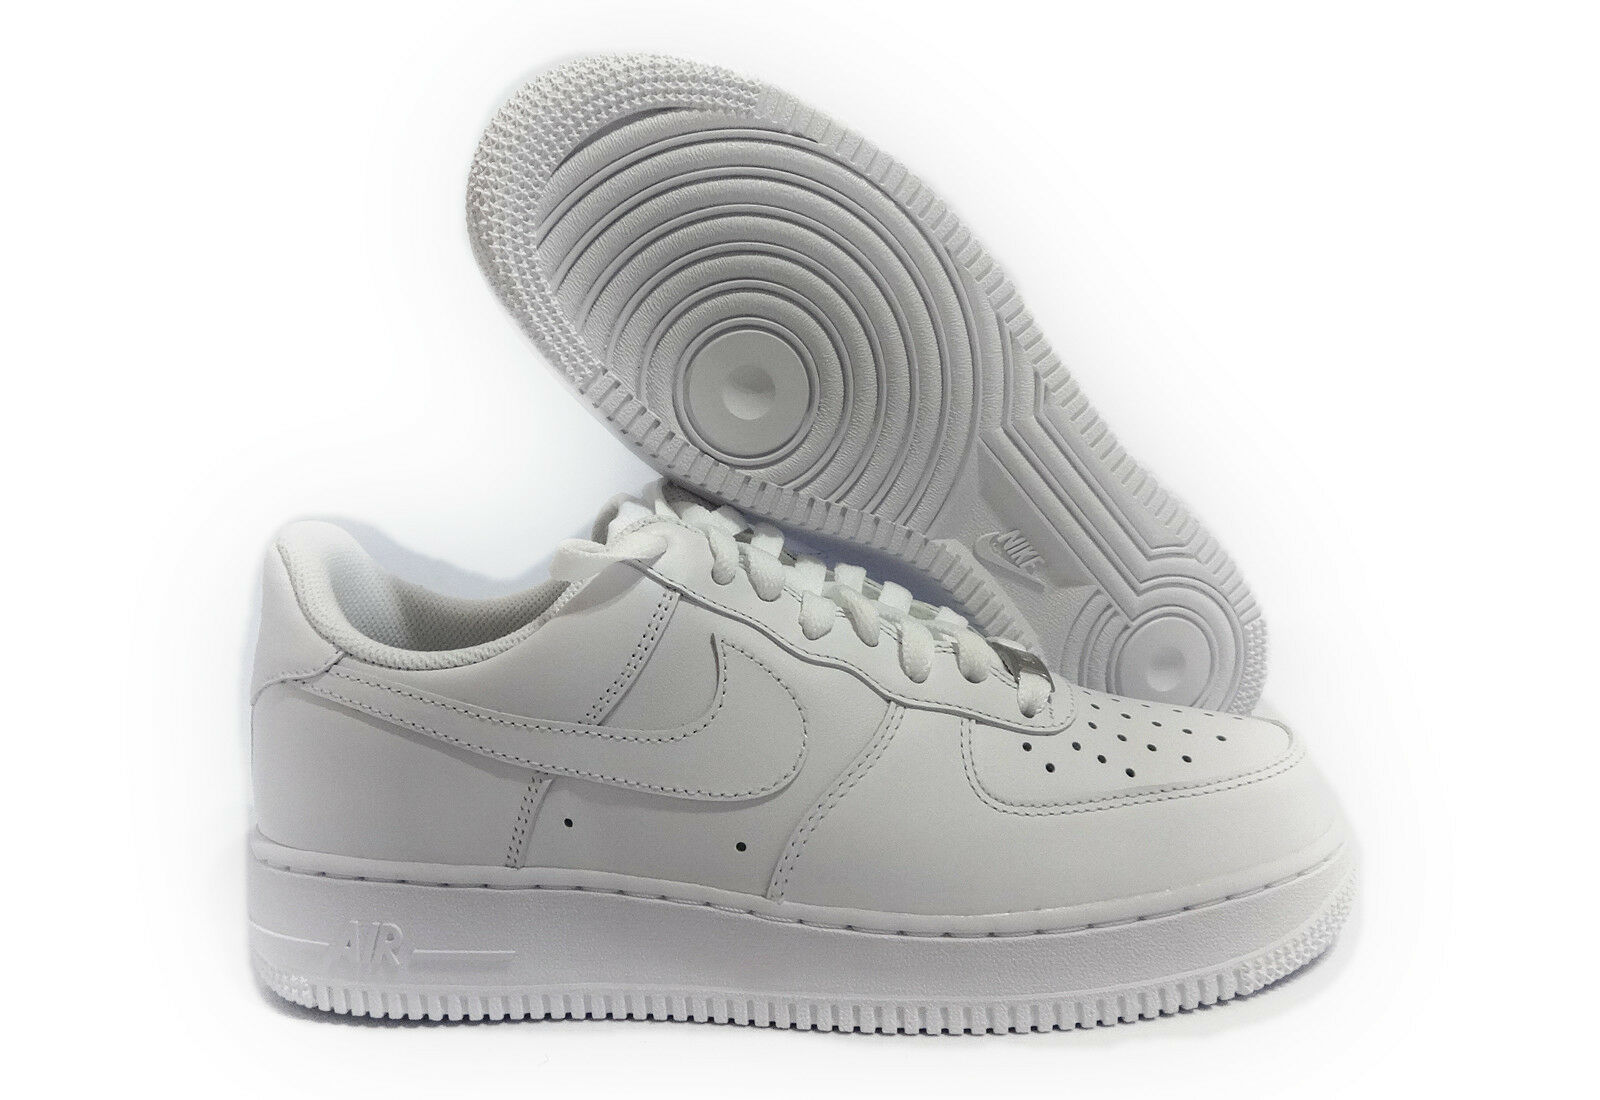 315122-111 NIKE AIR FORCE 1 '07 TRIPLE WHITE MEN SNEAKER SIZE 14 Comfortable and good-looking